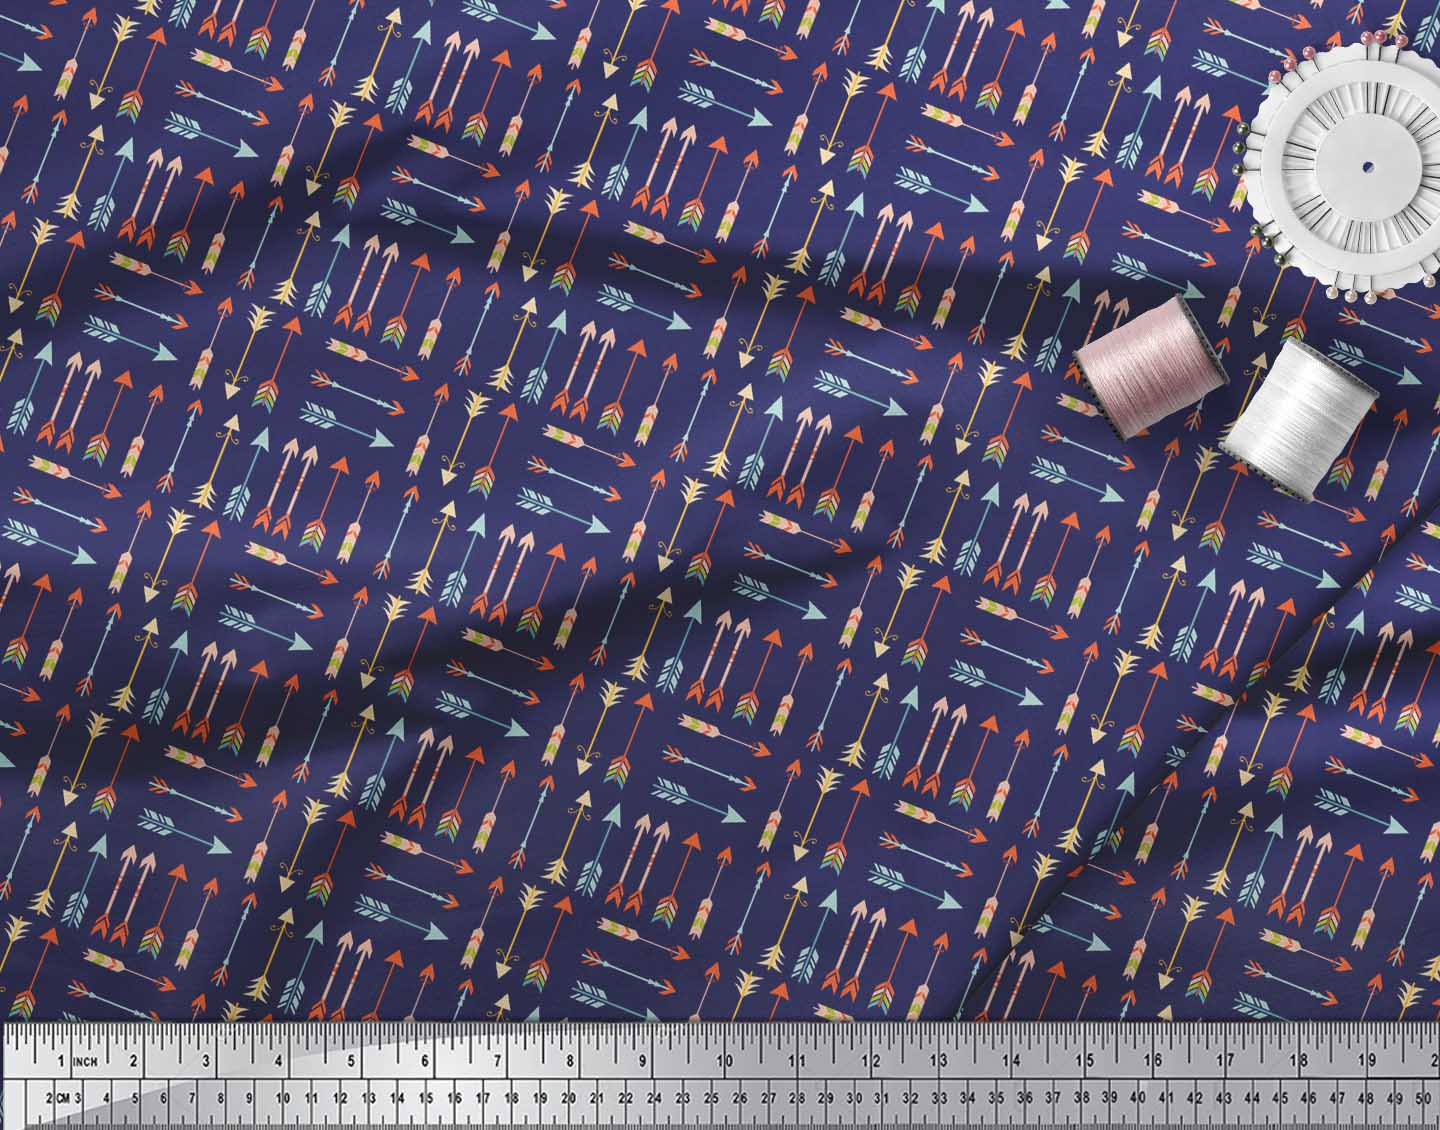 Soimoi-Blue-Cotton-Poplin-Fabric-Arrow-Tribal-Print-Fabric-by-the-fQy thumbnail 3